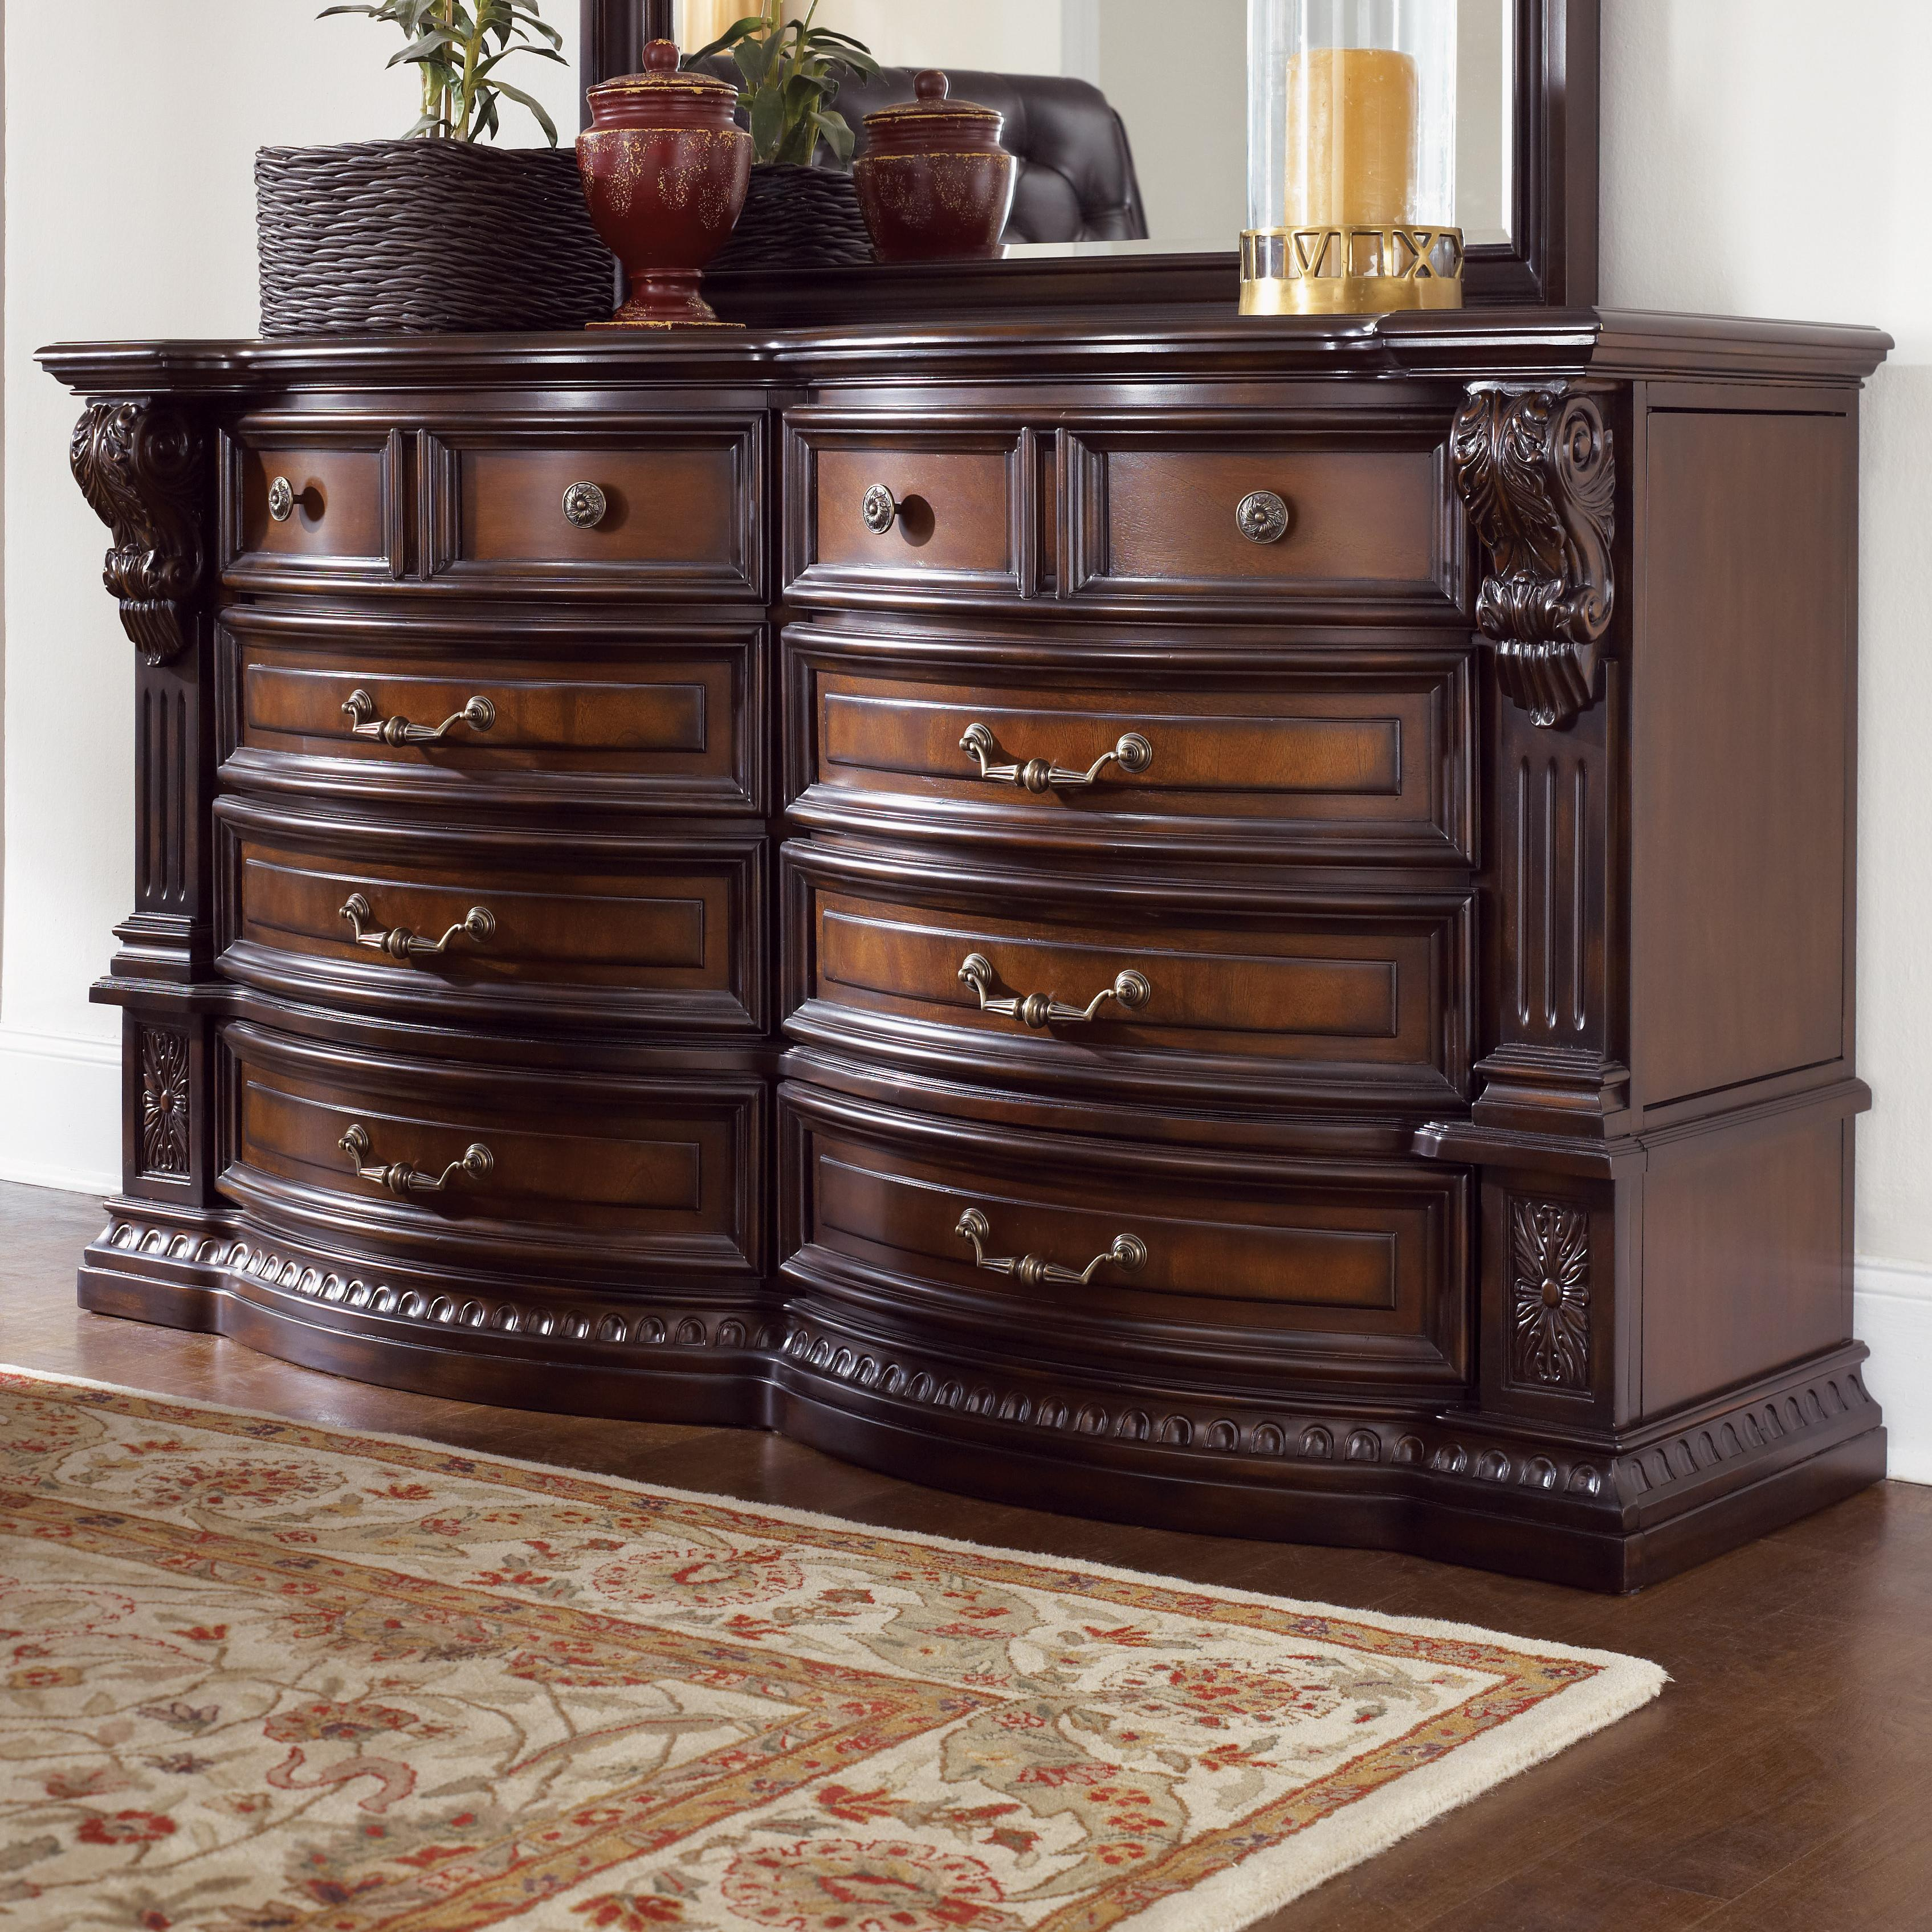 Fairmont Designs Grand Estates Dresser W 8 Drawers Royal Furniture Dressers